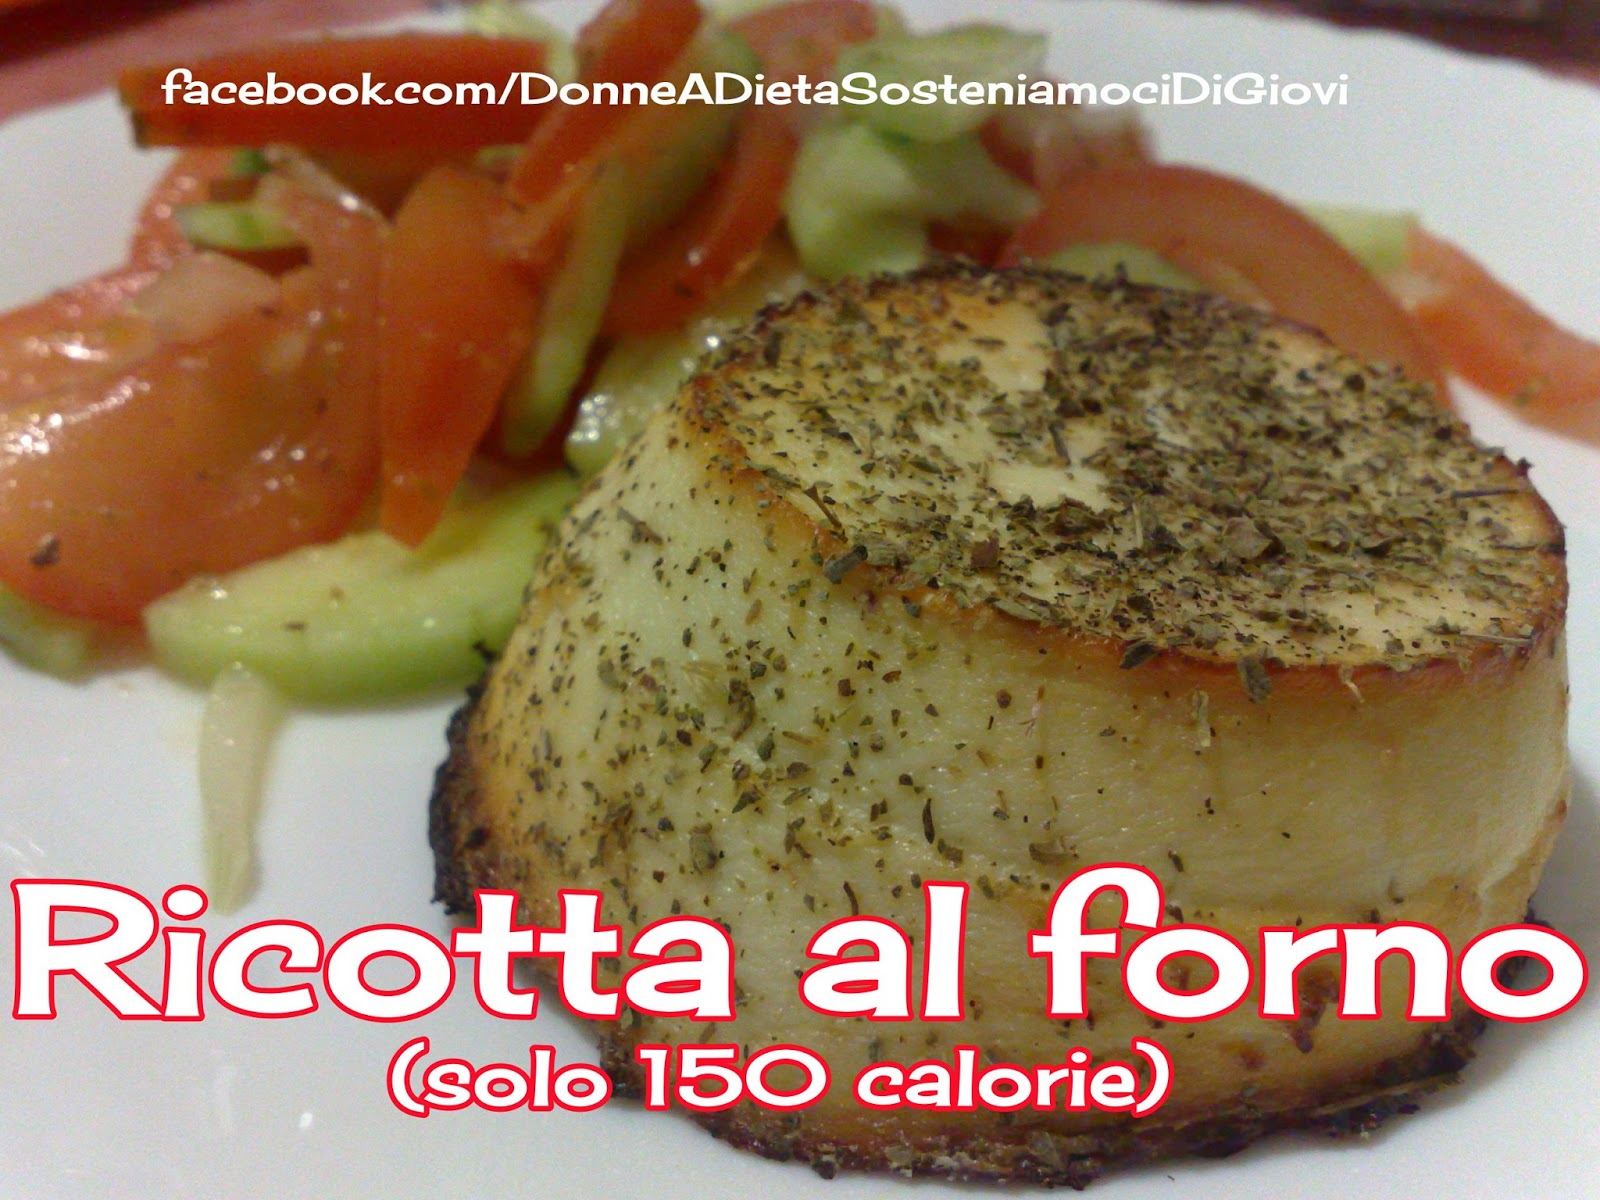 Ricotta light al forno (150 calorie)